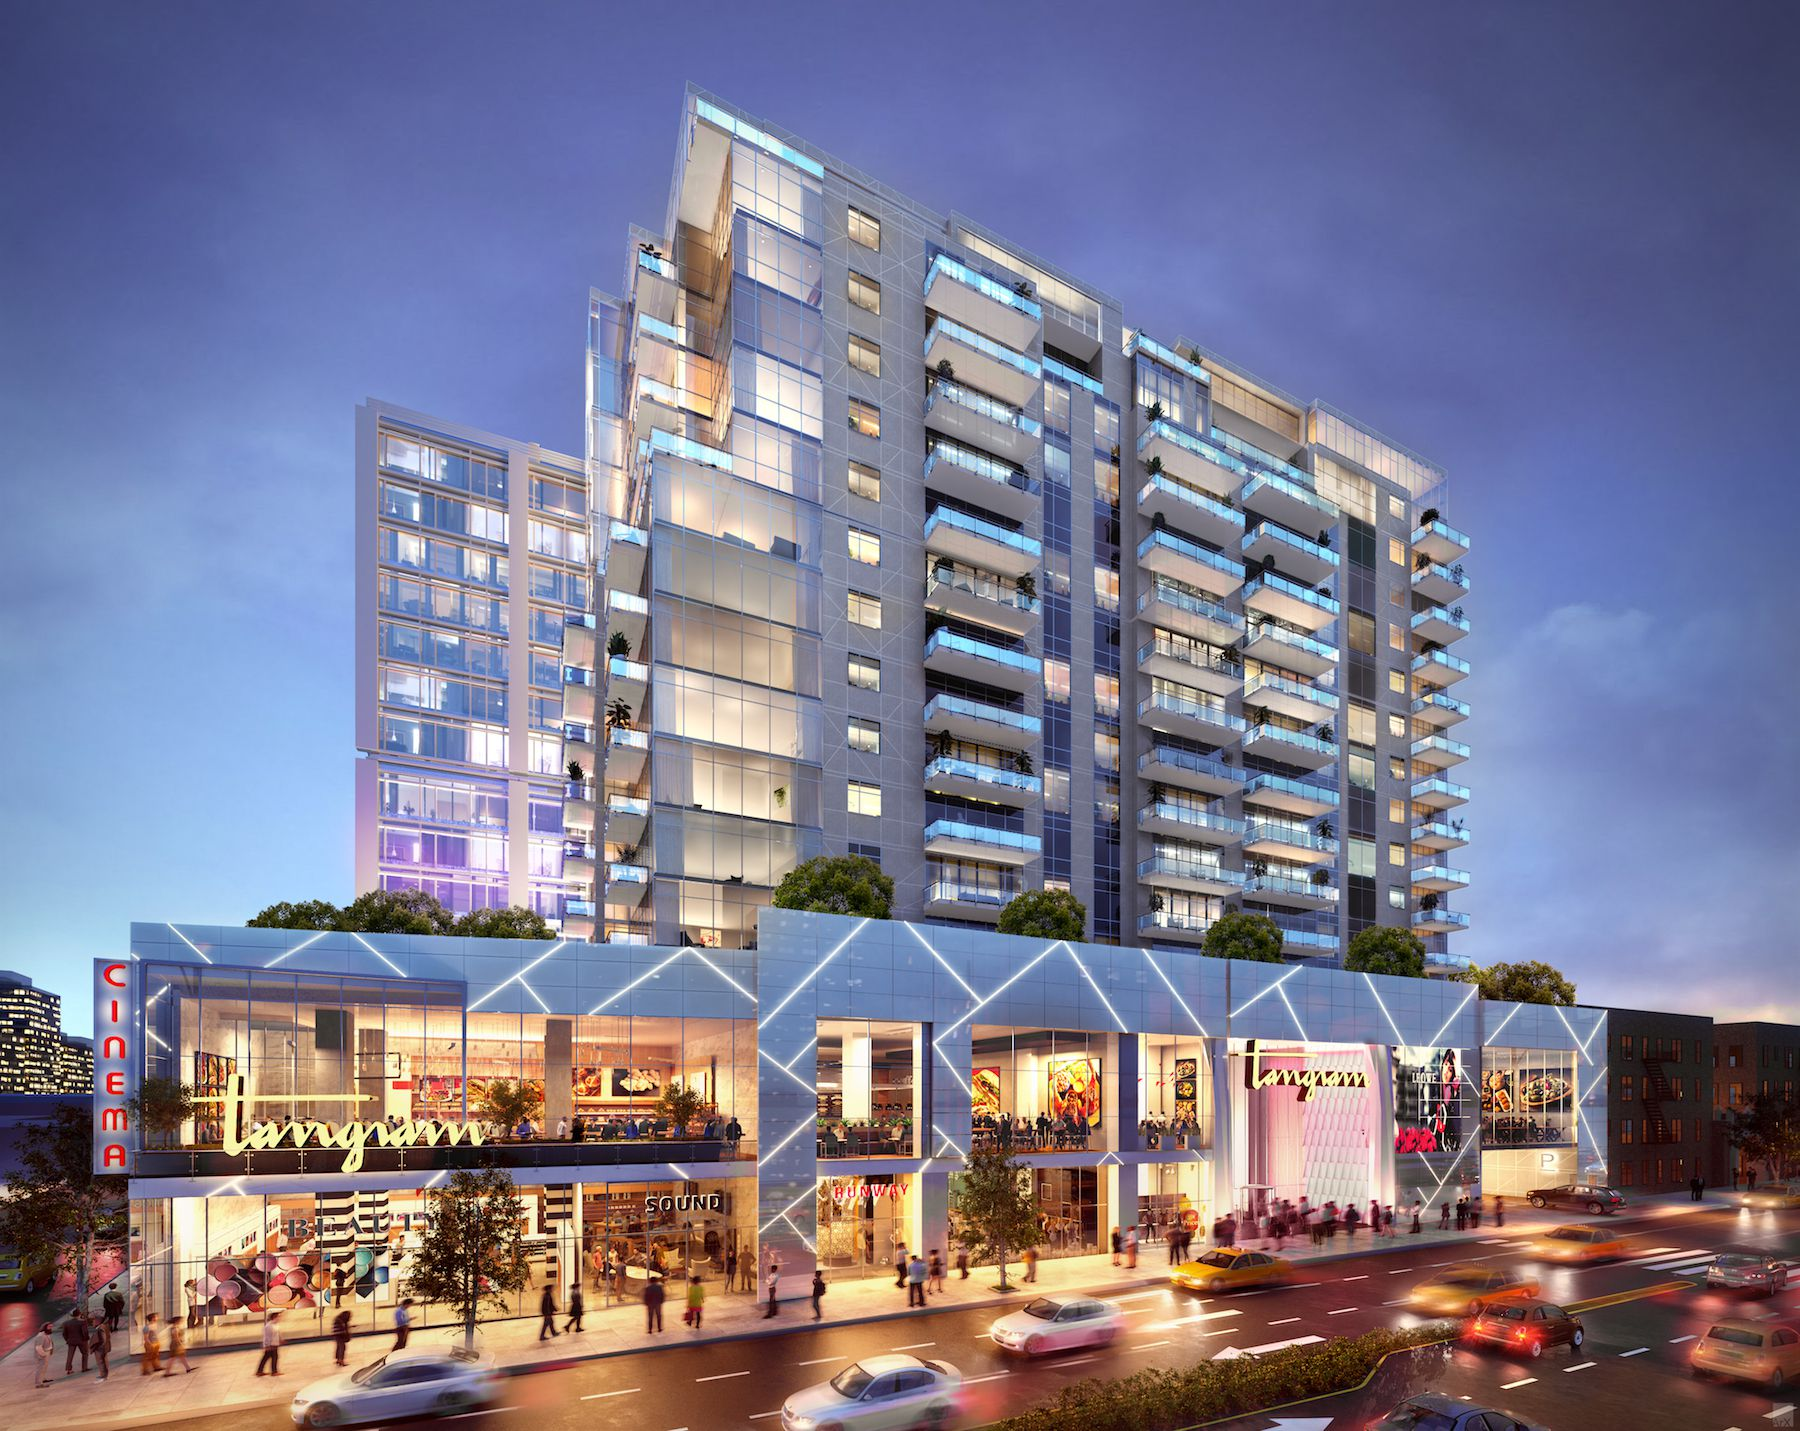 Check-Out F&T Group's Tangram House South, Where Sales Just Launched At The First Of 4 Proposed Buildings